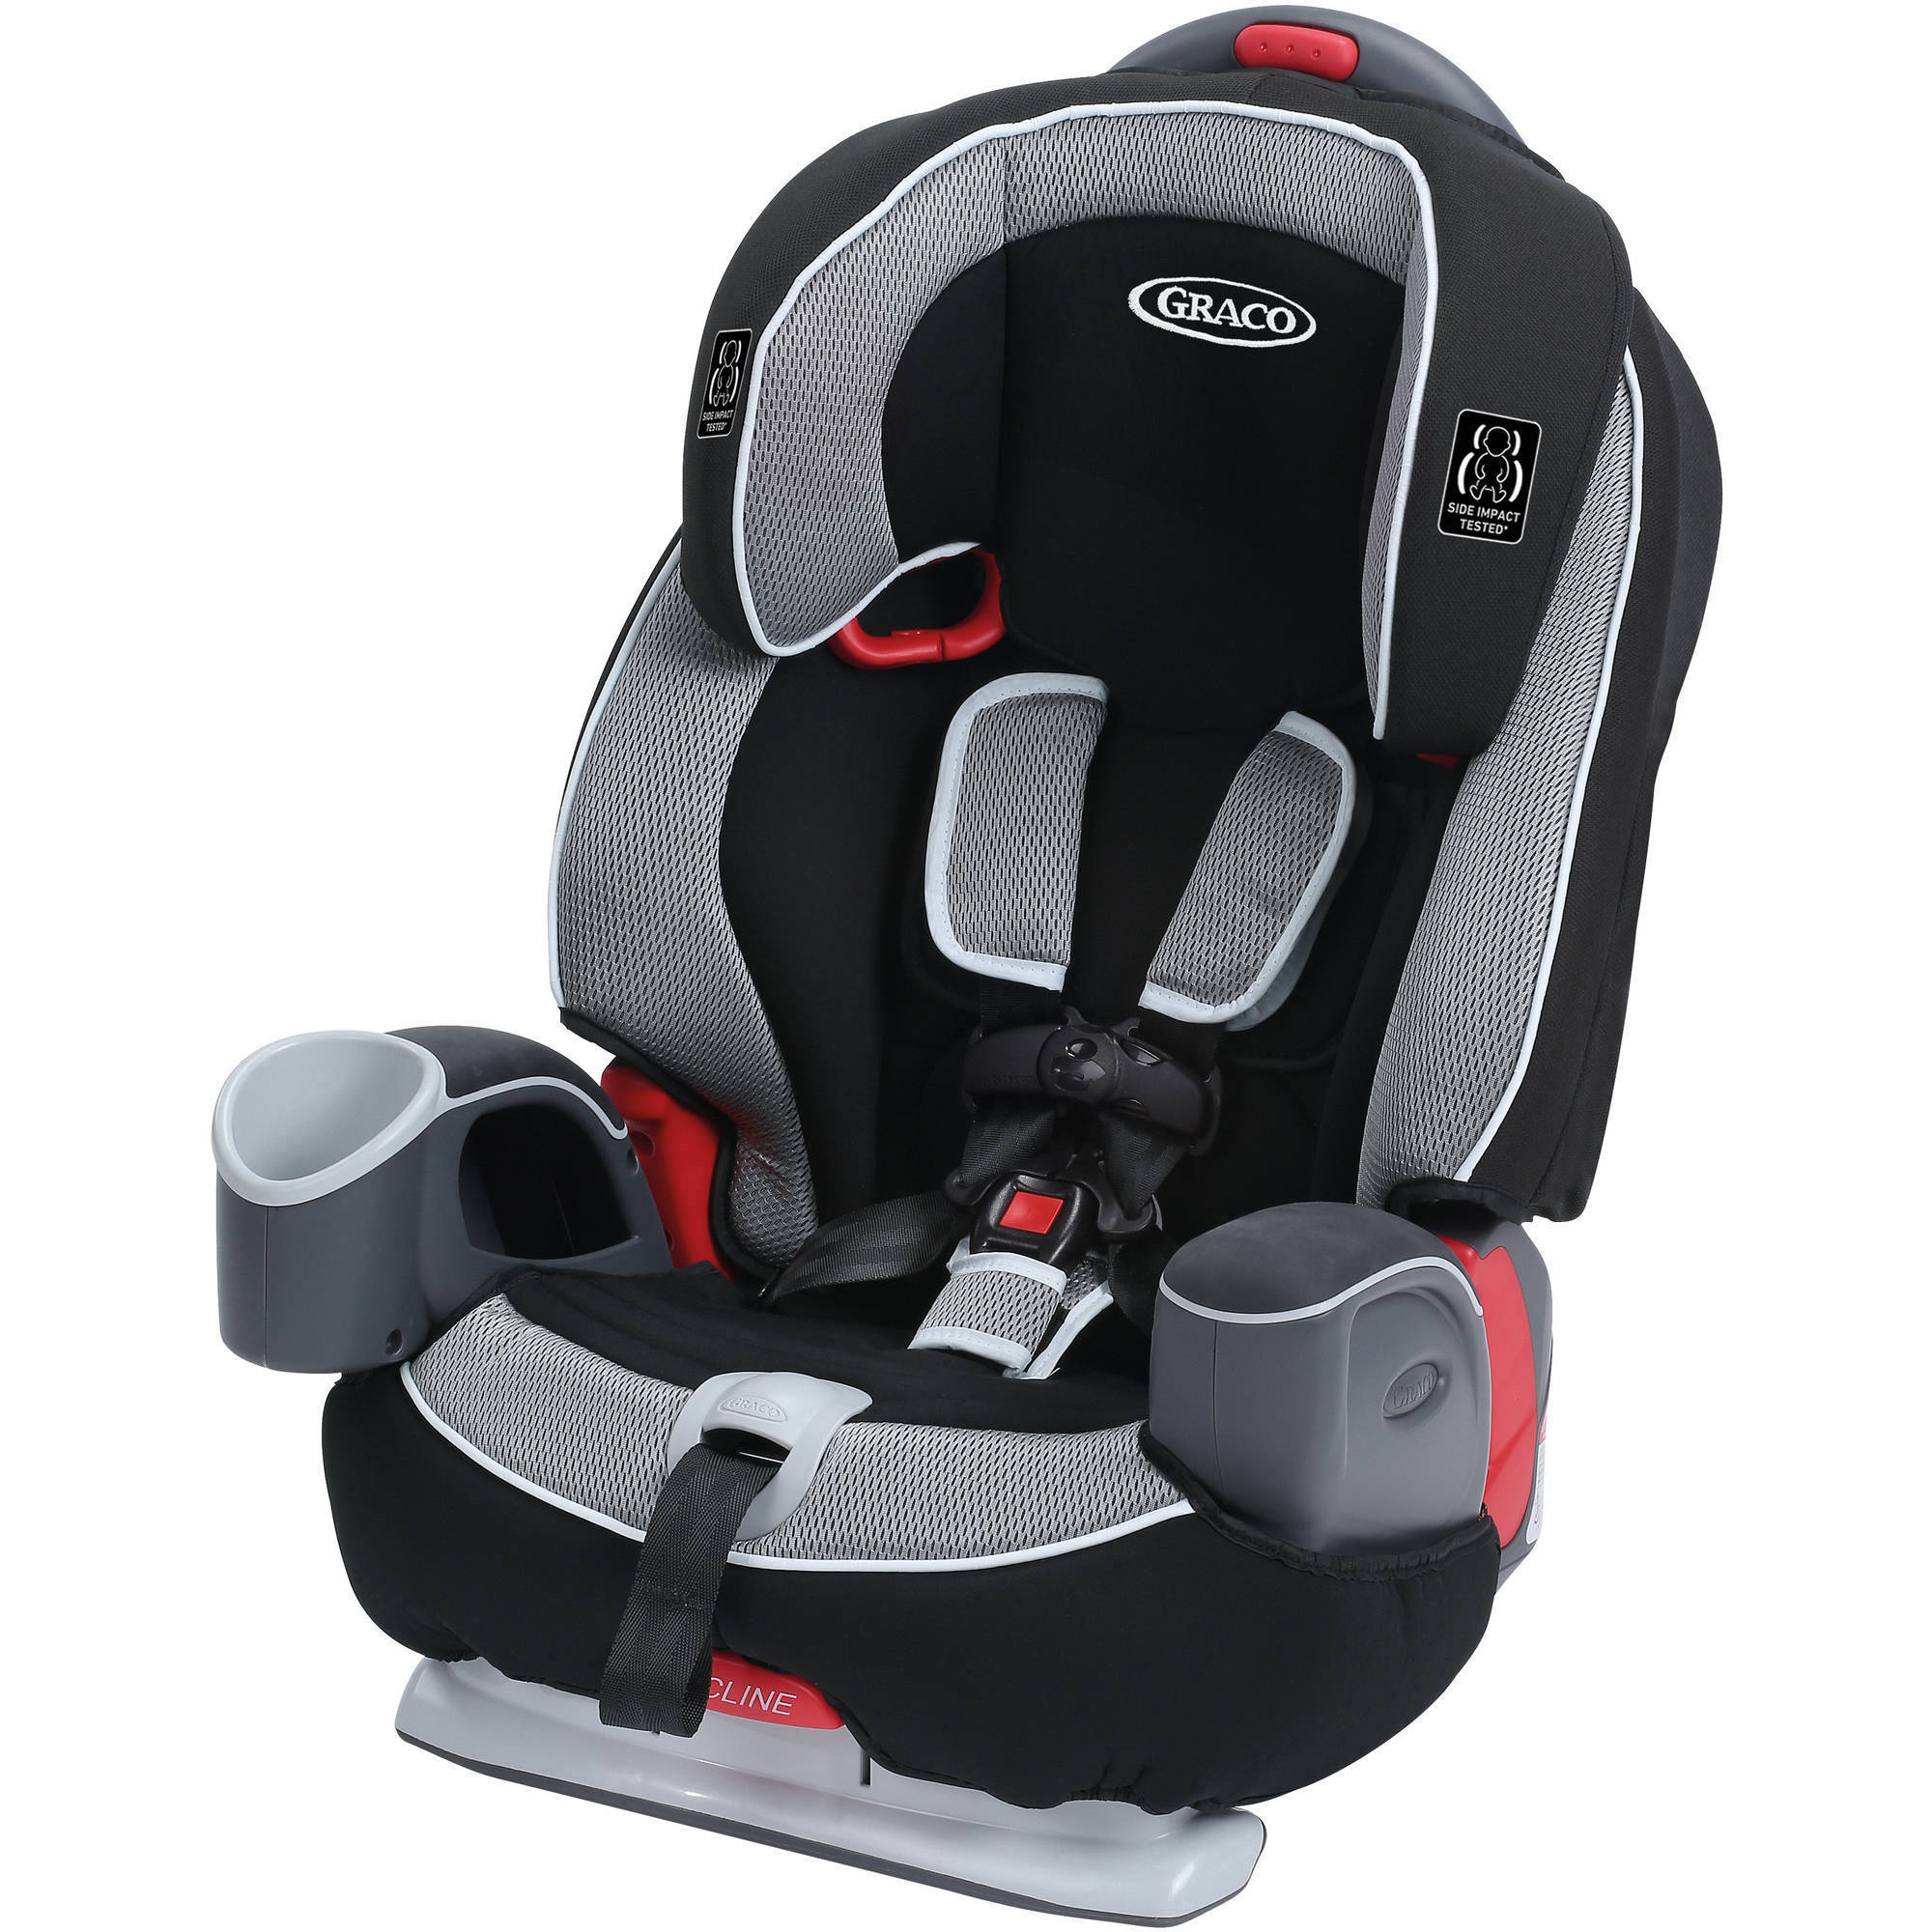 Graco Nautilus 65 3 in 1 Multi-use Harness Booster Car Seat, in Track